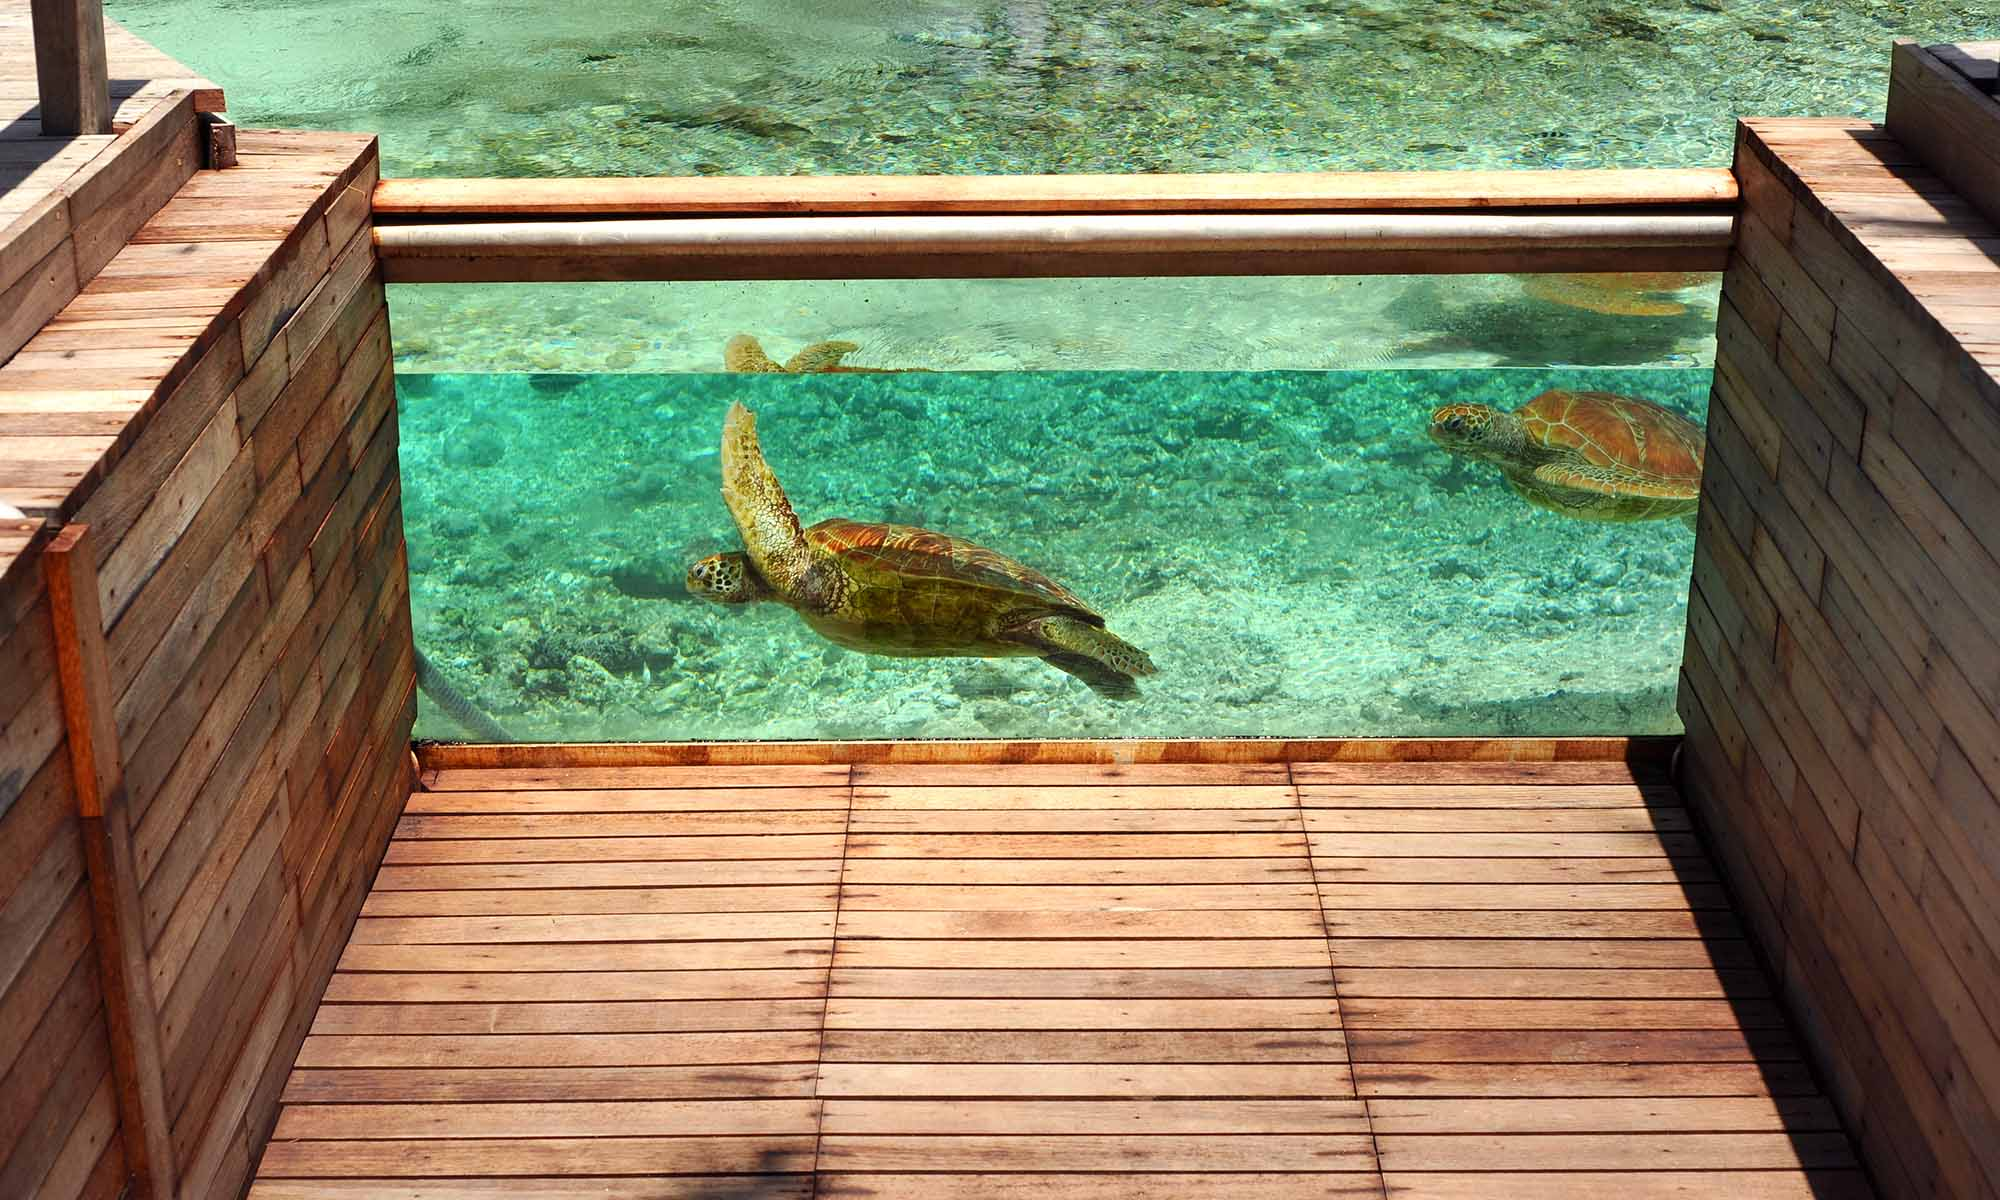 Le Meridien Bora Bora's Renowned Turtle Sanctuary